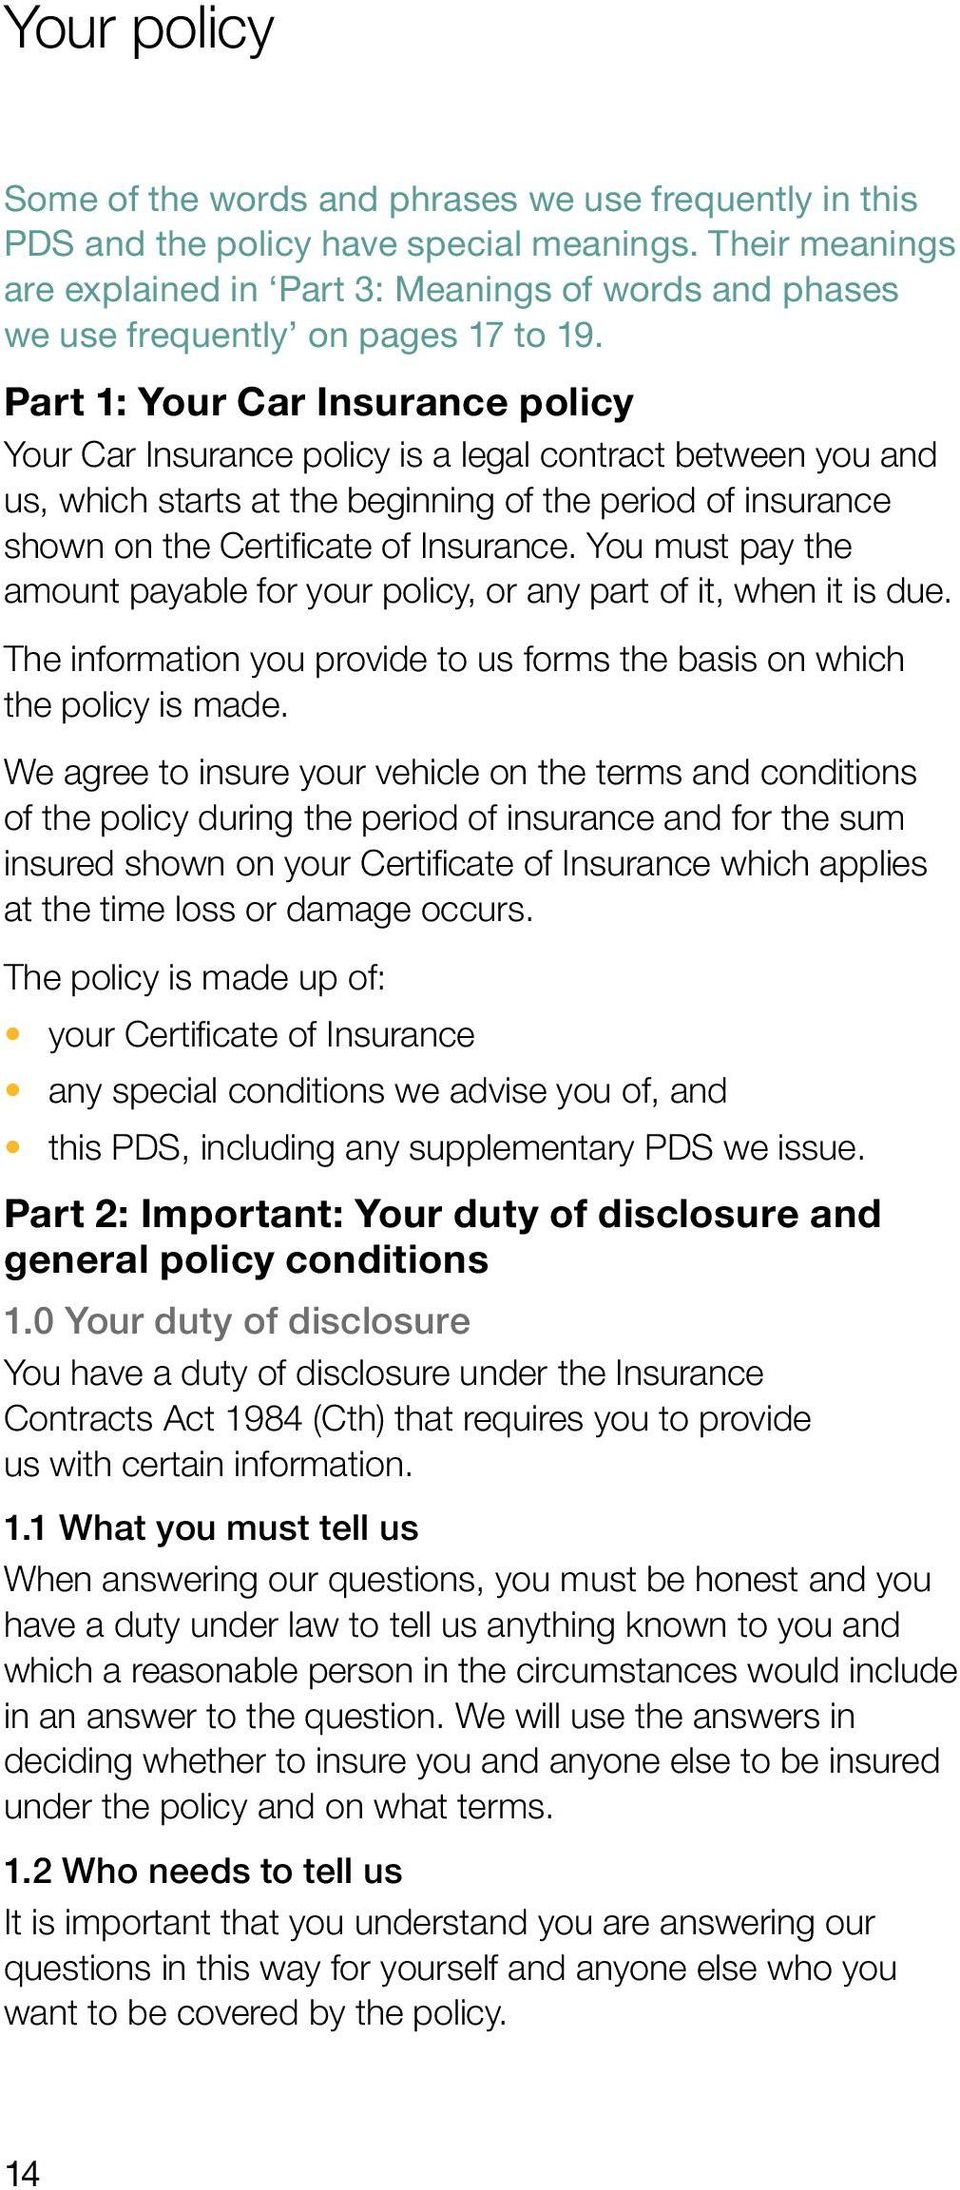 Part 1: Your Car Insurance policy Your Car Insurance policy is a legal contract between you and us, which starts at the beginning of the period of insurance shown on the Certificate of Insurance.